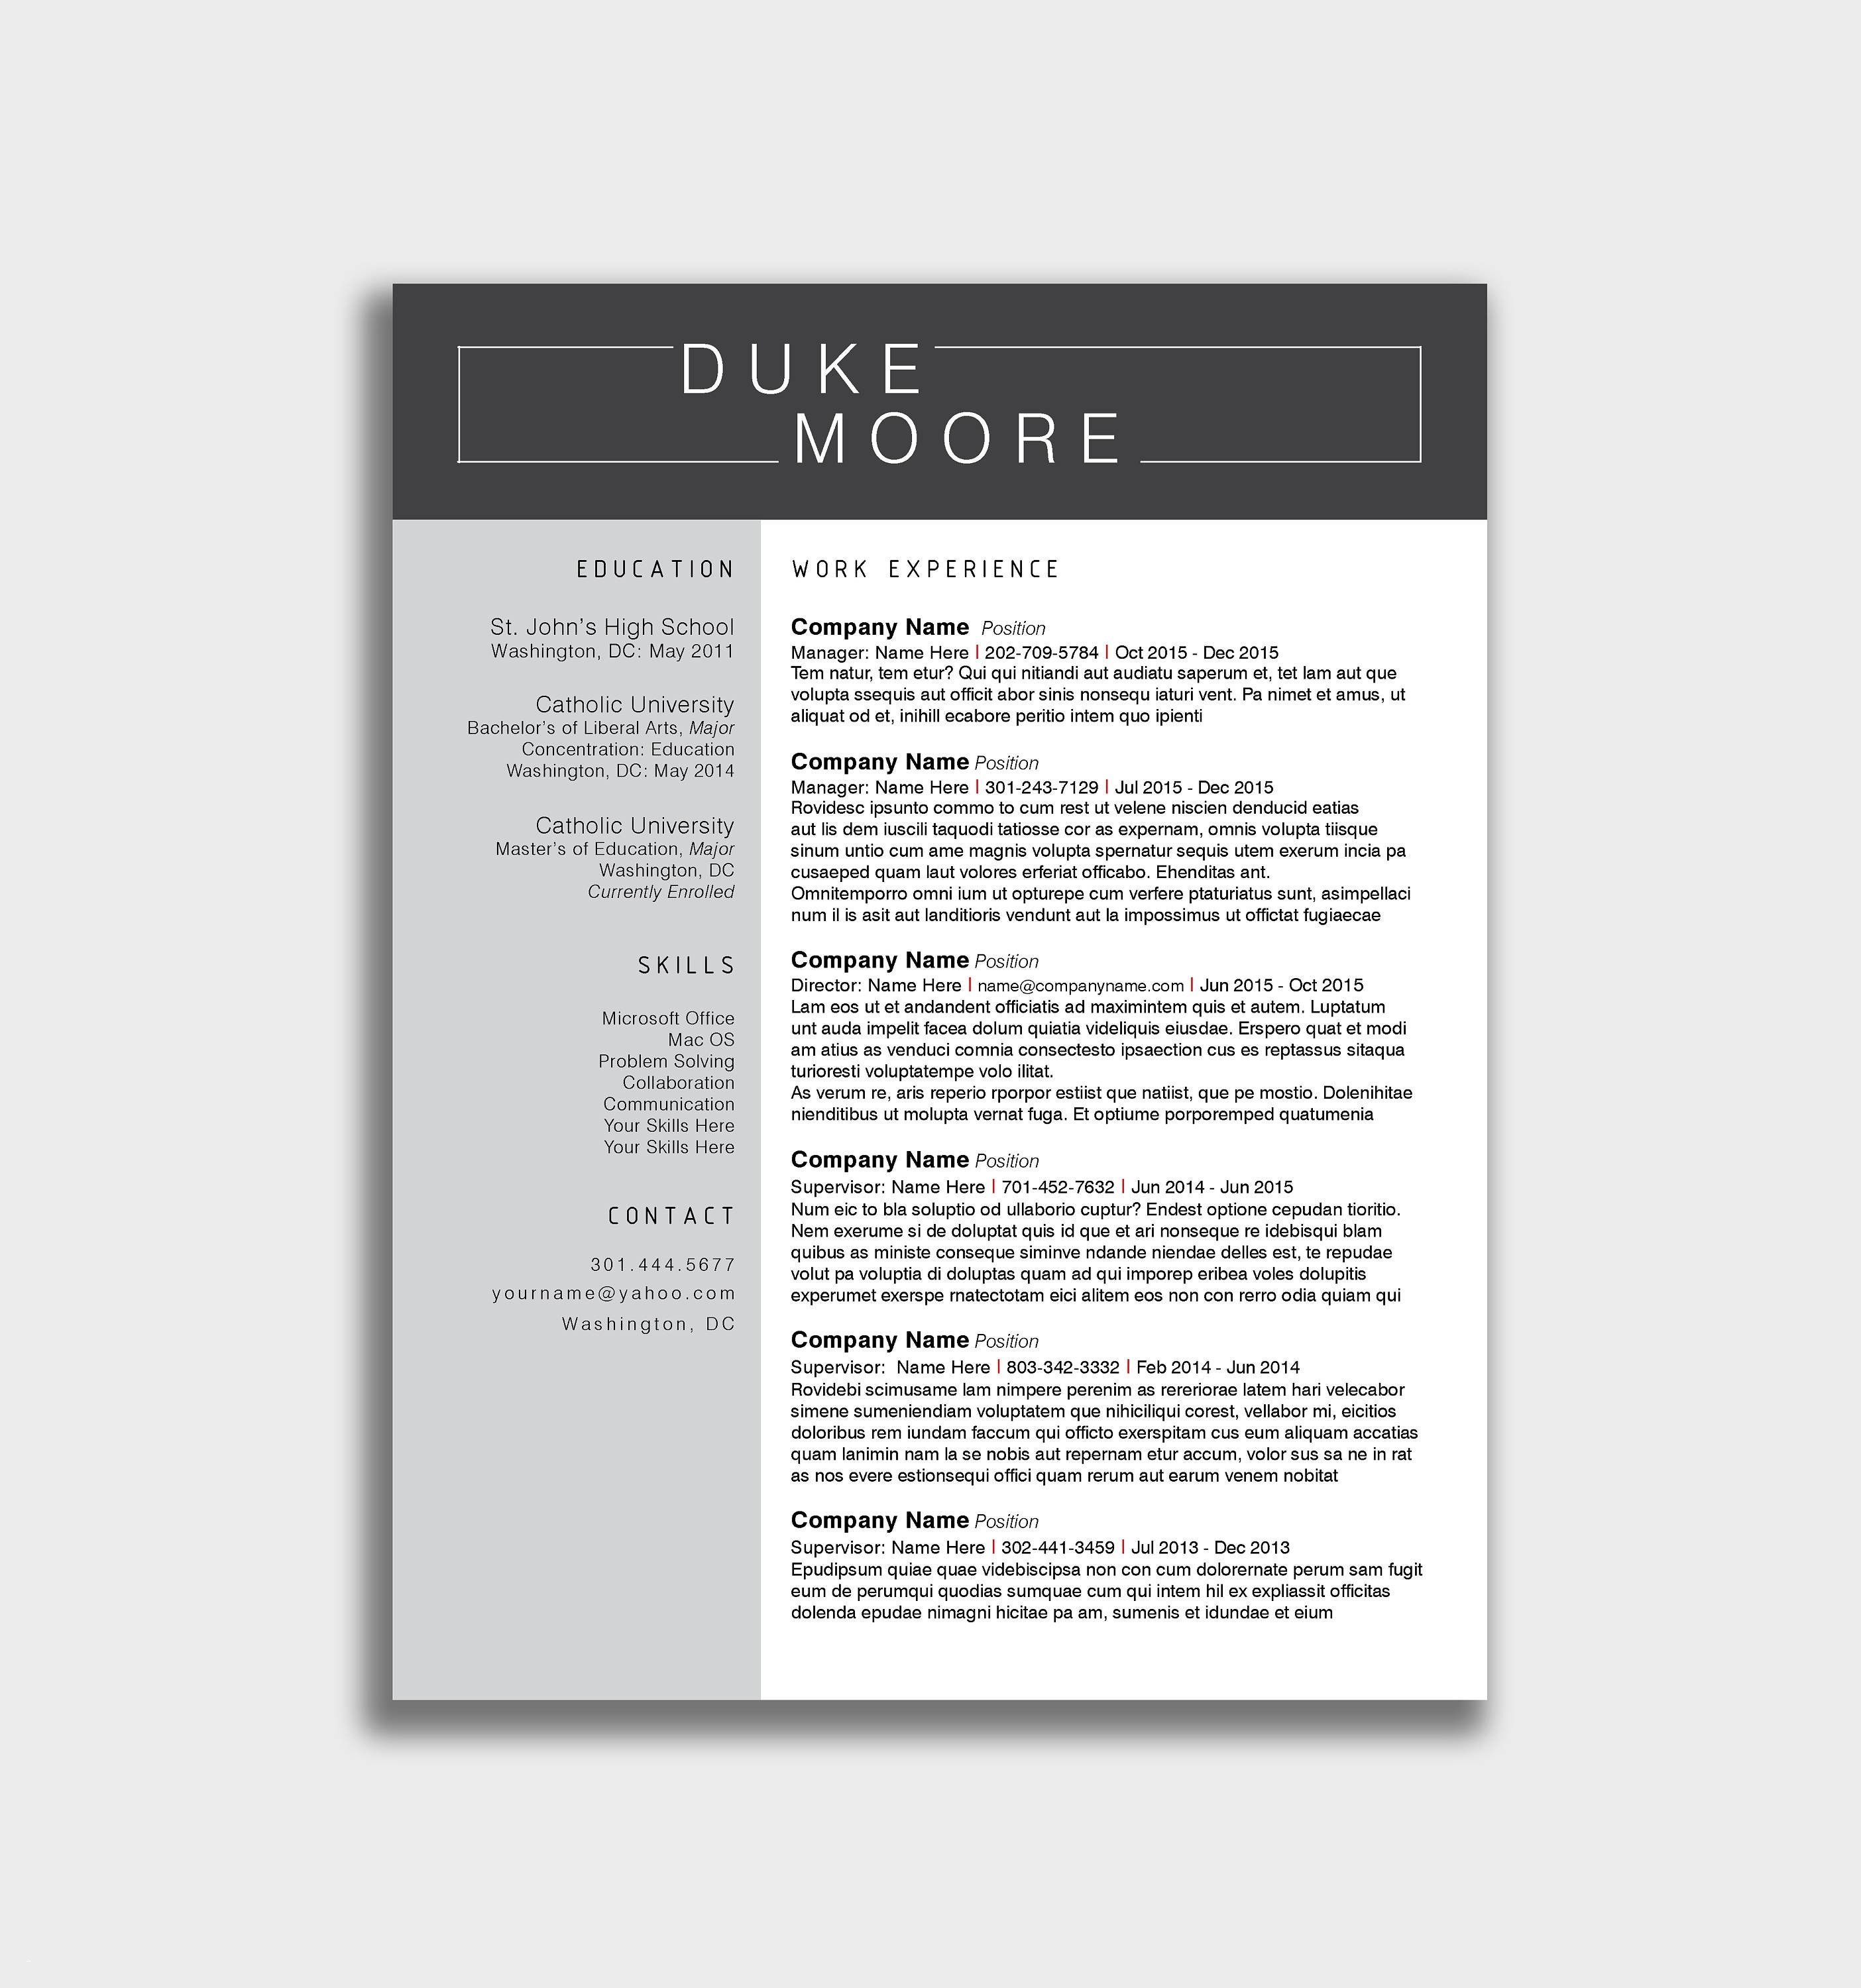 Attractive Resume Templates Free Download - Free Cv Samples format and Templates Page 333 Of 353